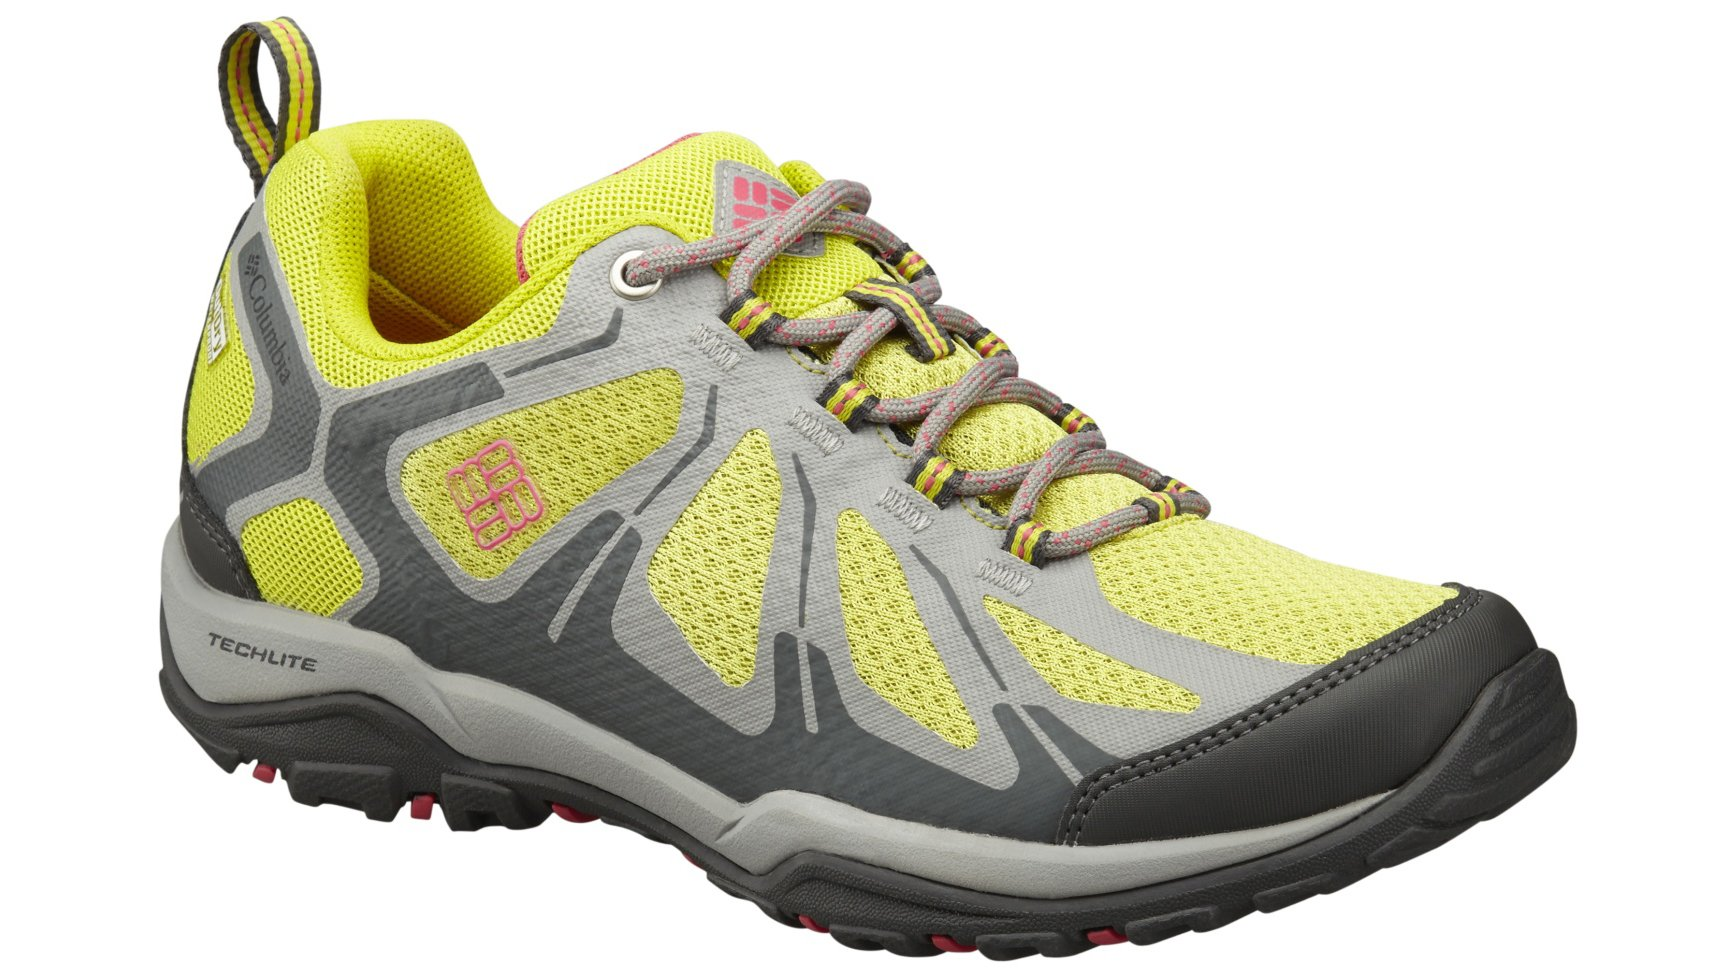 a3da44d497 The Peakfreak is the perfect waterproof trainer for summer walking – sturdy  enough for trekking but ...